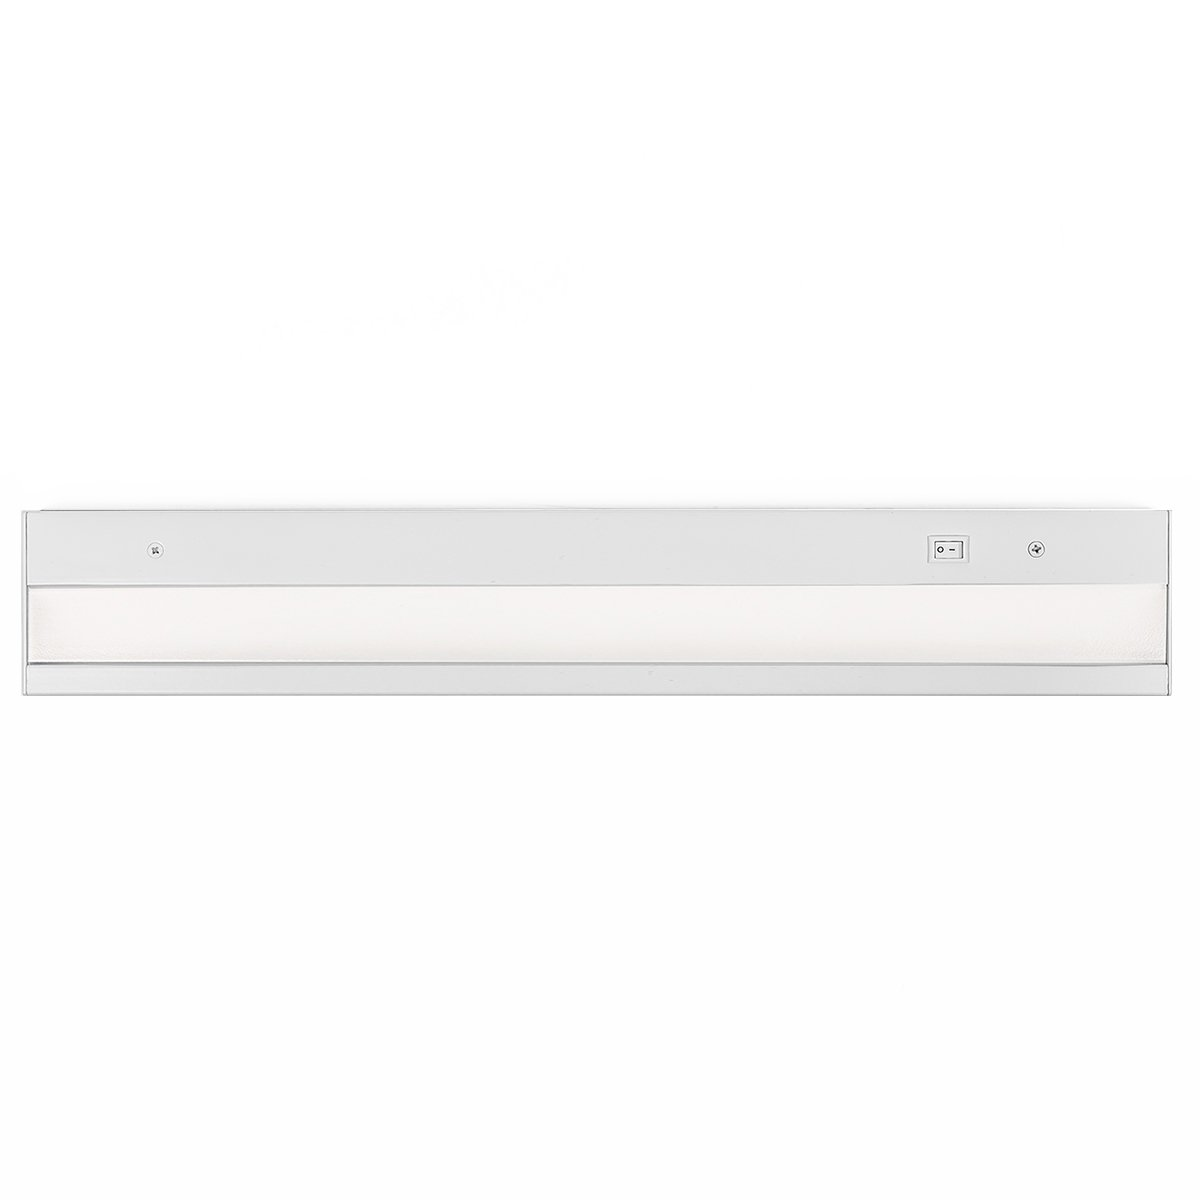 WAC Lighting BA-ACLED18-927-WT Contemporary LedME PRO ACLED Bar Light